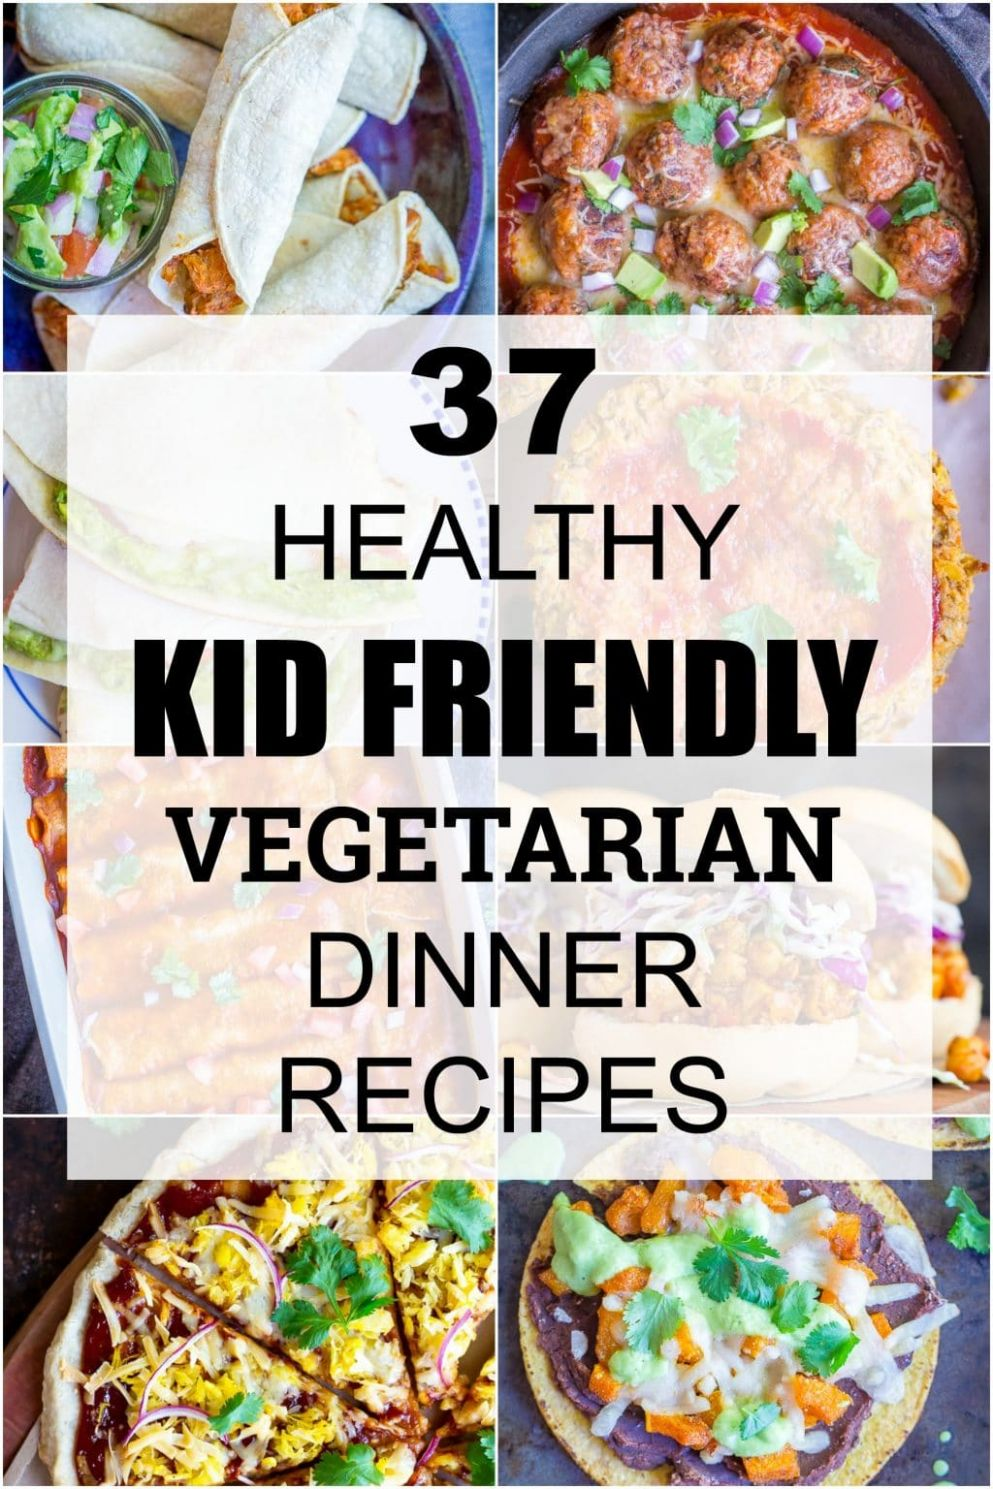 11 Healthy Kid Friendly Vegetarian Dinner Recipes - She Likes Food